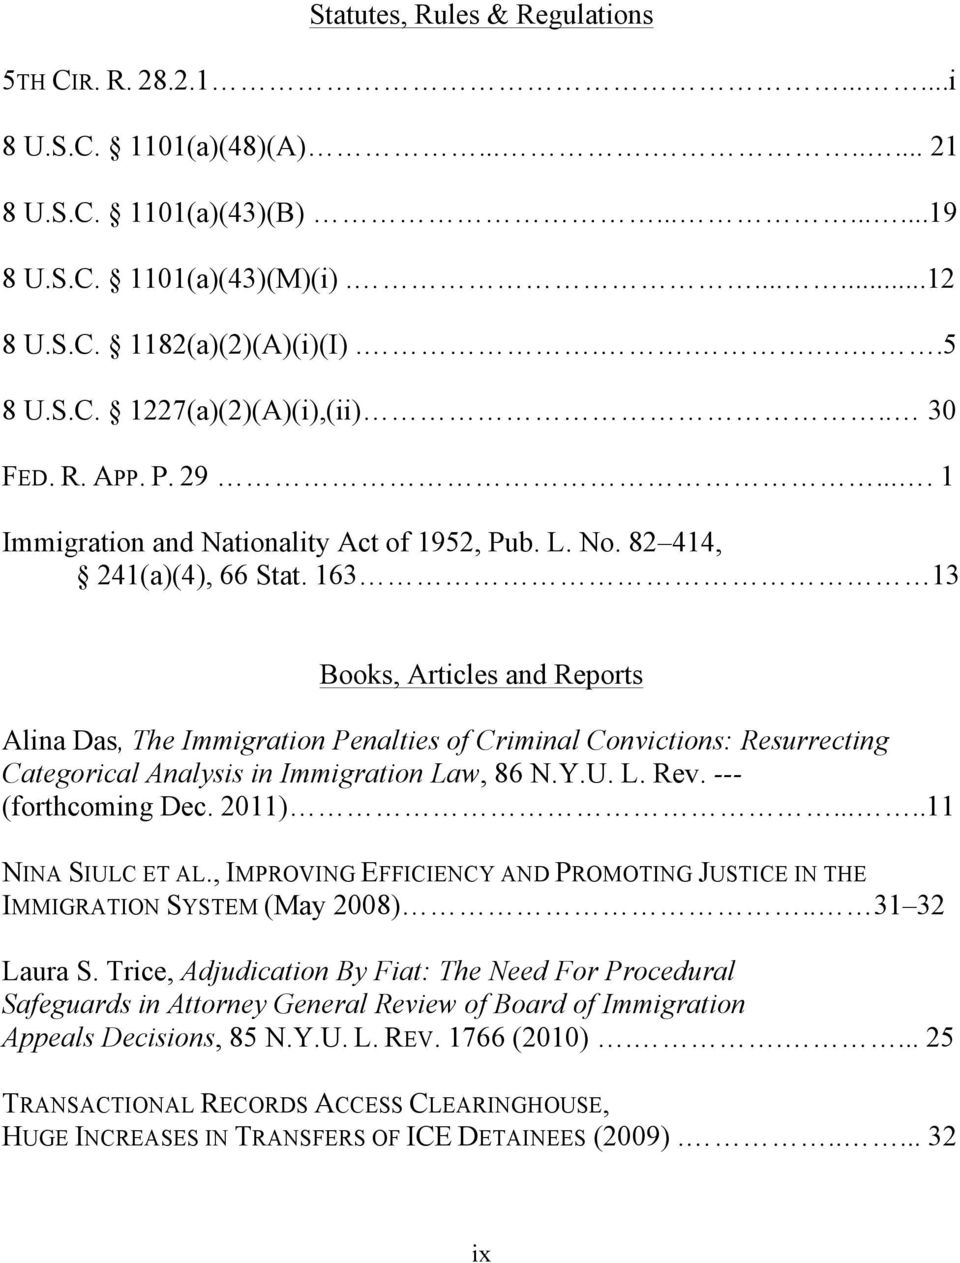 163 13 Books, Articles and Reports Alina Das, The Immigration Penalties of Criminal Convictions: Resurrecting Categorical Analysis in Immigration Law, 86 N.Y.U. L. Rev. --- (forthcoming Dec. 2011).